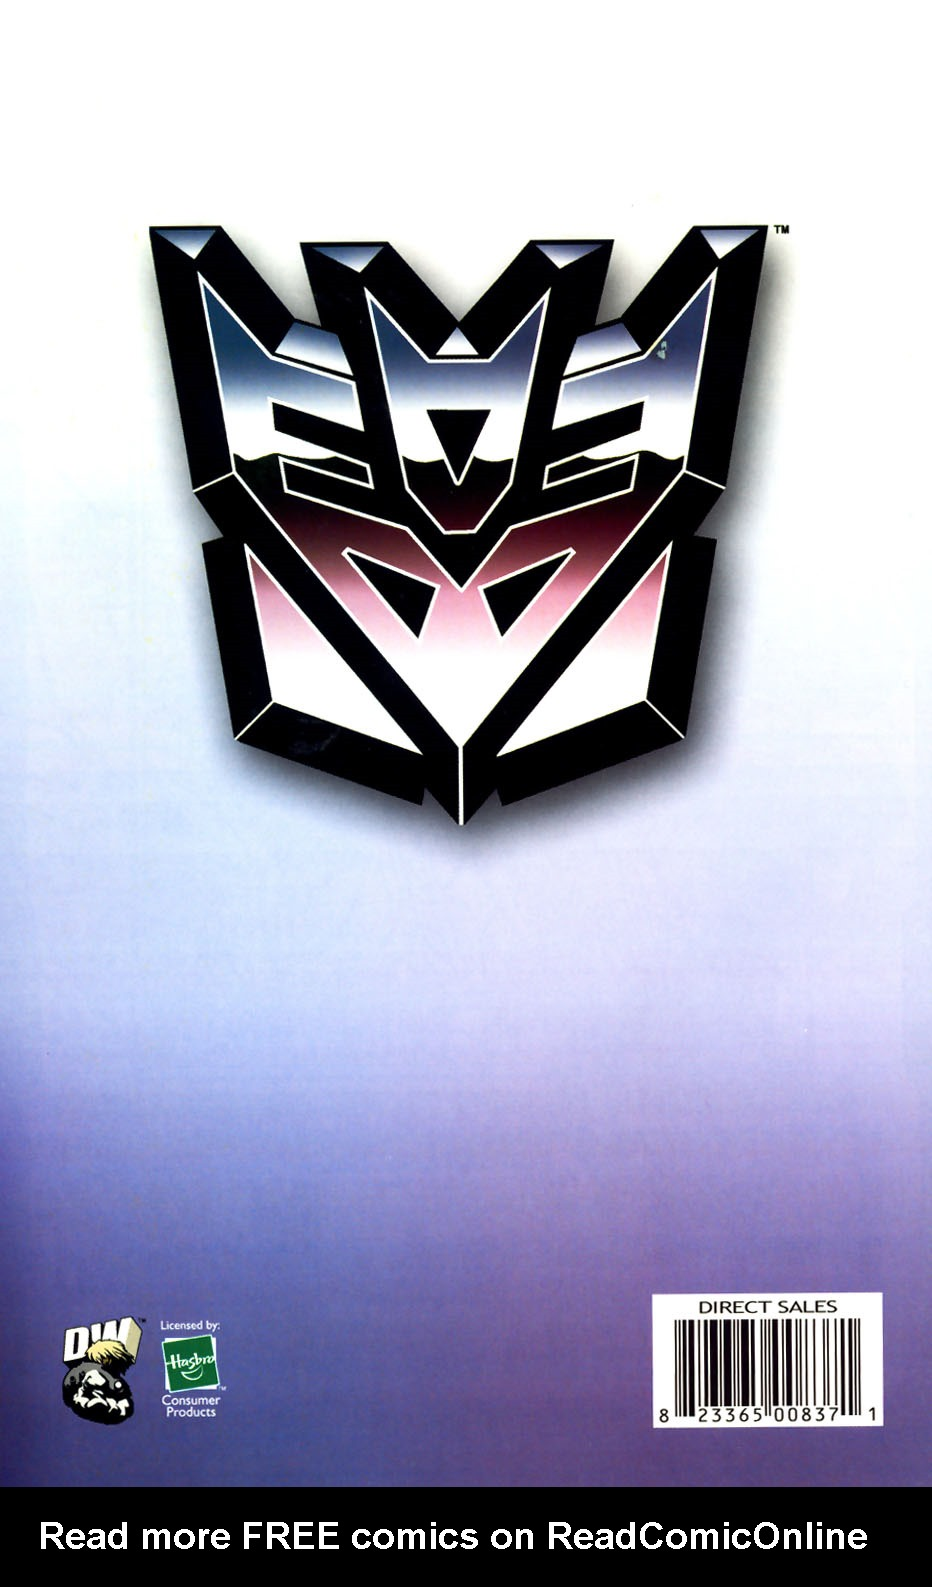 Read online Transformers: More than Meets the Eye comic -  Issue #6 - 68